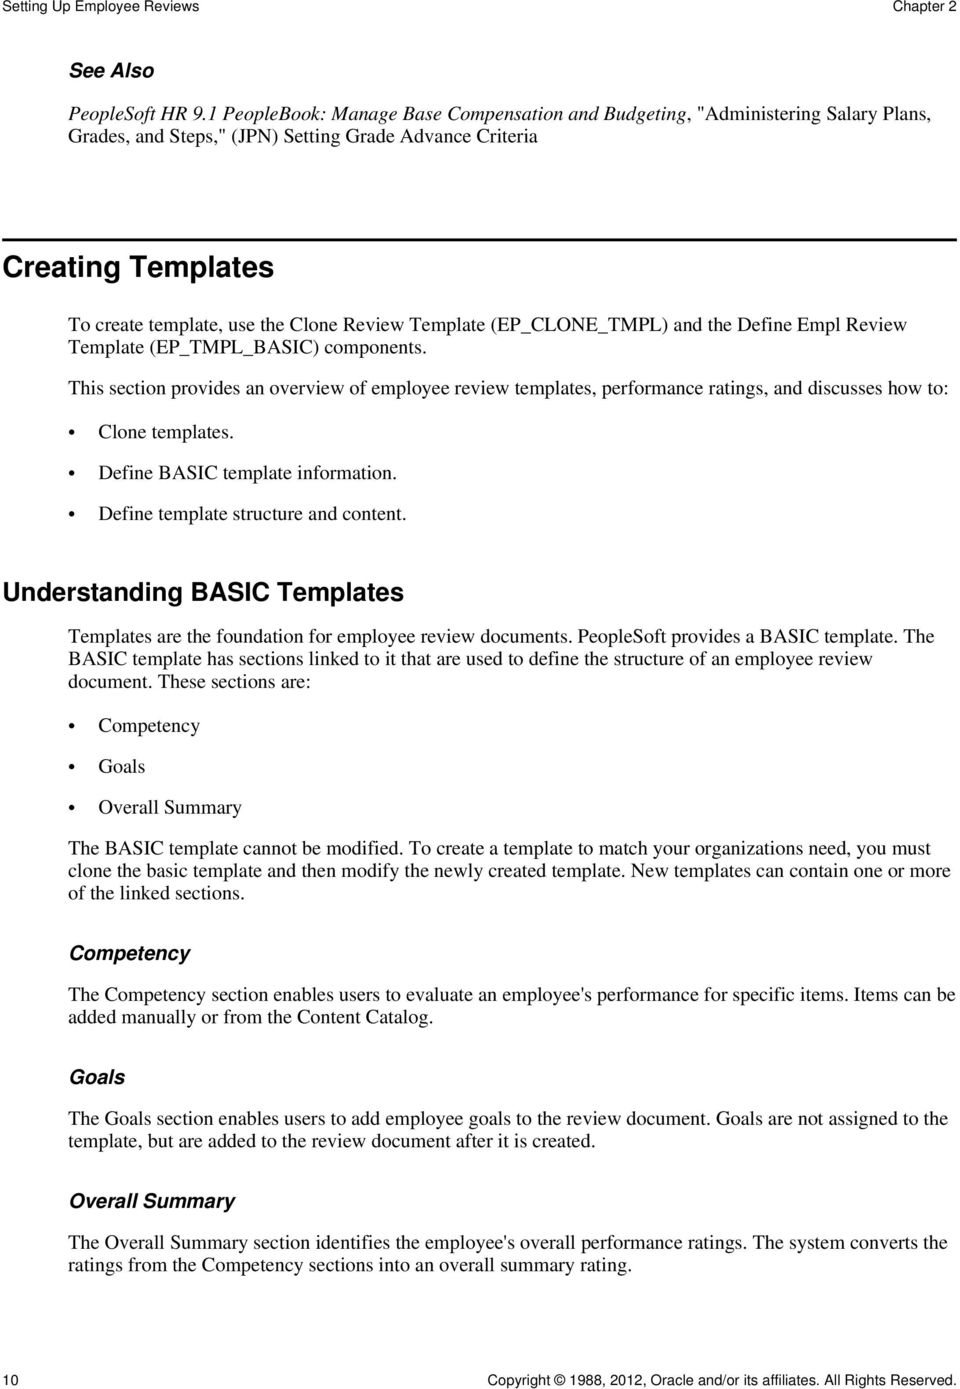 Template (EP_CLONE_TMPL) and the Define Empl Review Template (EP_TMPL_BASIC) components.